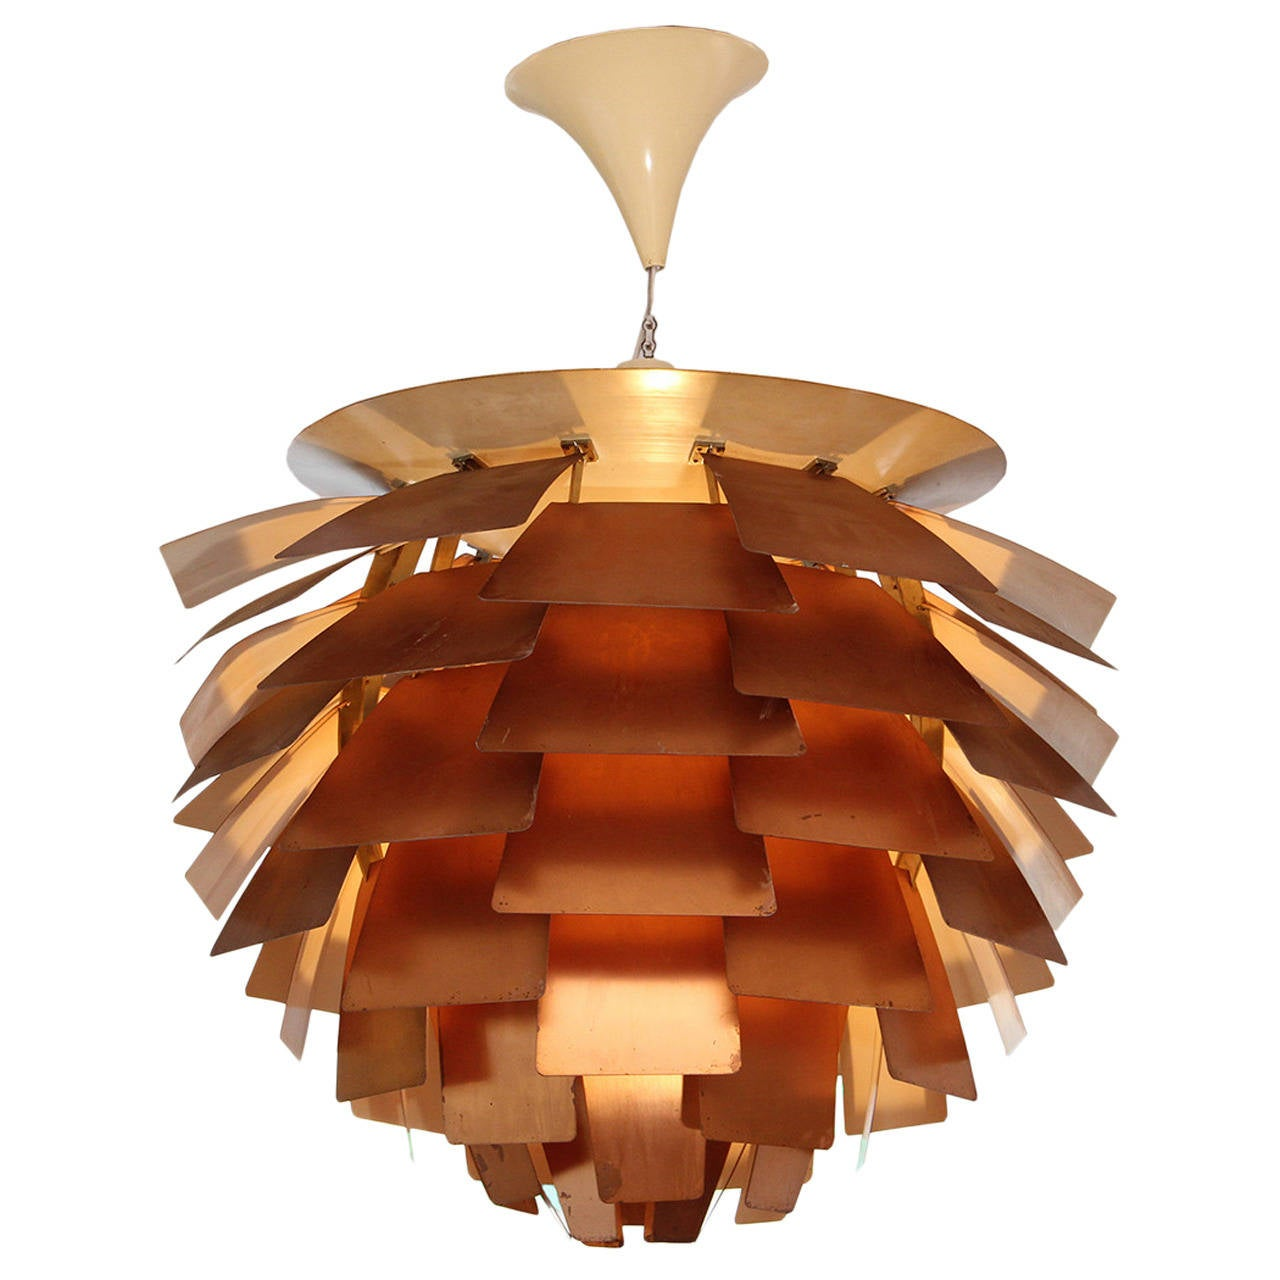 PH Artichoke Lamp by Poul Henningsen edited by Louis Poulsen  1958 1PH Artichoke Lamp by Poul Henningsen edited by Louis Poulsen  1958  . Poulsen Lighting Artichoke. Home Design Ideas